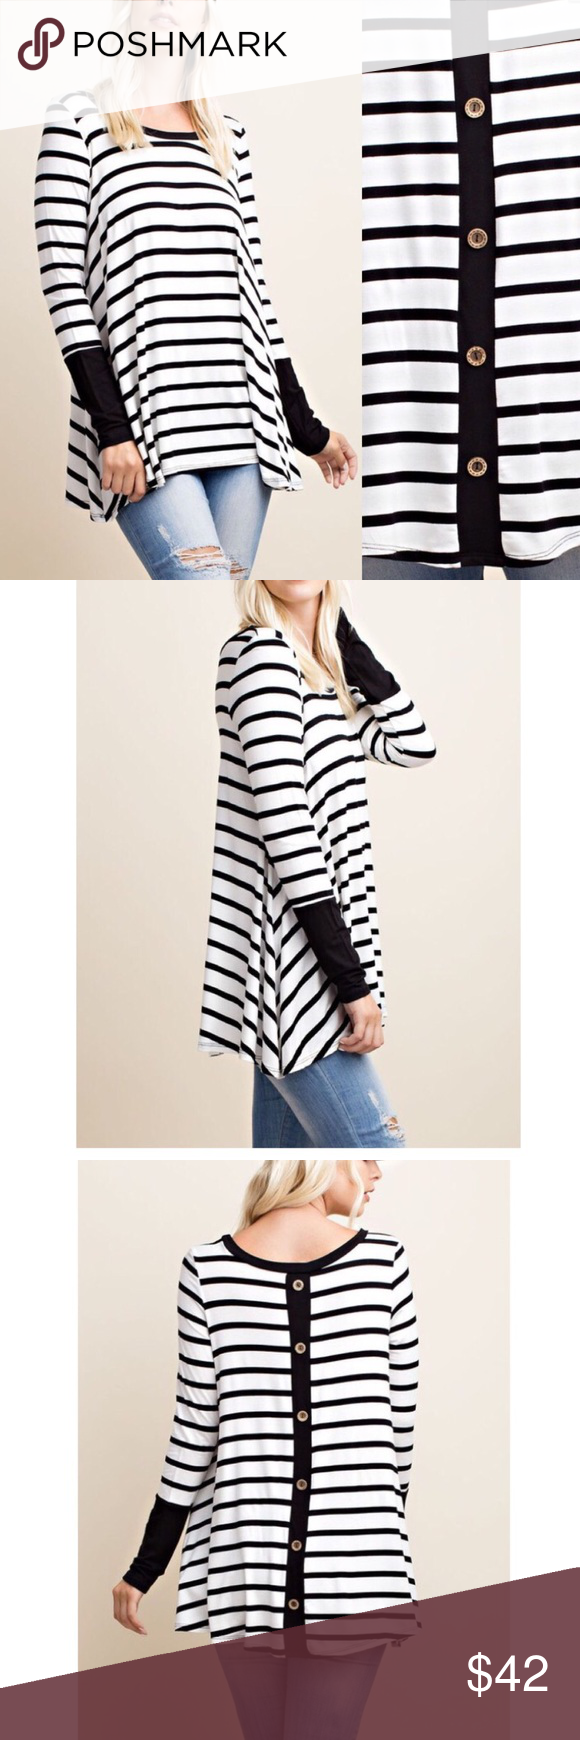 "🆕 ARRIVAL! Long sleeve stripe back buttoned top Super comfy Long sleeve stripe top Solid patterns on the wrist Cute back buttons Round neck  MADE IN U.S.A Material: 95% Rayon,5% spandex Easy to wear, Very comfy A great top to wear under hoodies, jackets, vests. Pair it with distressed jeans and booties or leggings and boots.   Measurements:  Small: Size 2/4 Armpit to Armpit: 19.5"" Length: 28.5""  Medium: Size 6/8 Armpit to Armpit: 20.5"" Length: 28.5""  Large: Size 10/12 Armpit to Armpit…"